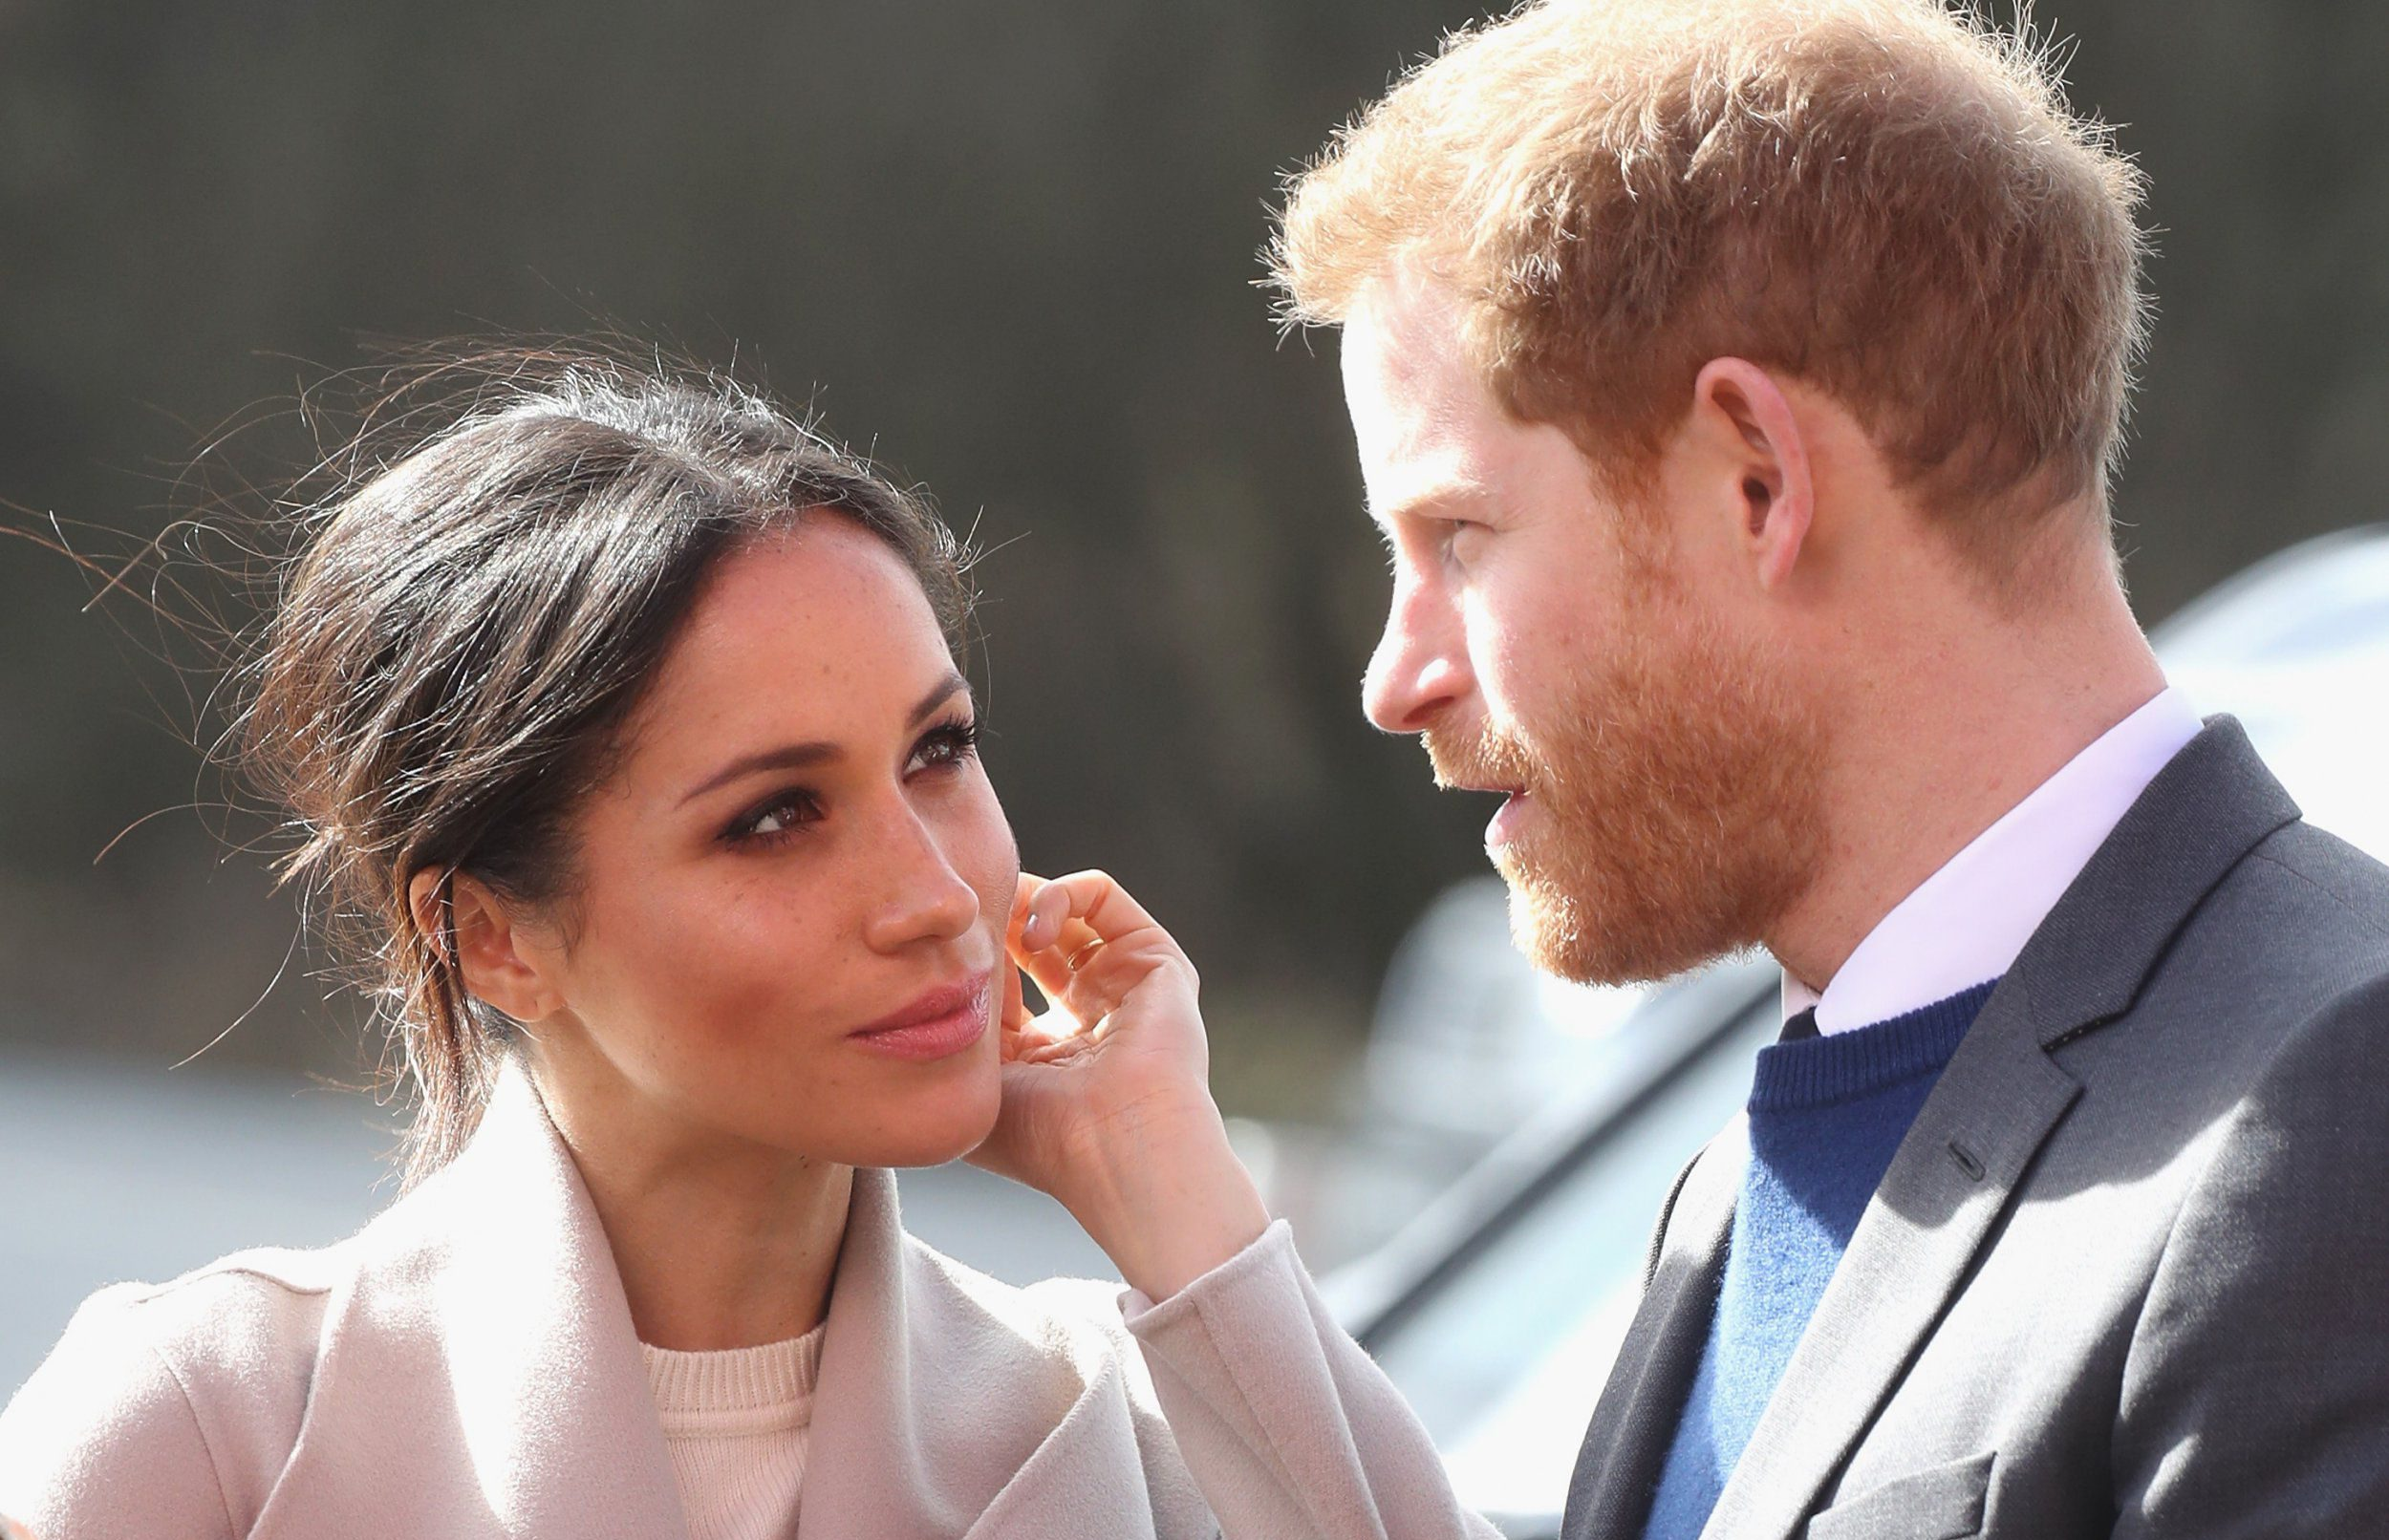 Can we stop fixating on Meghan Markle having a baby?